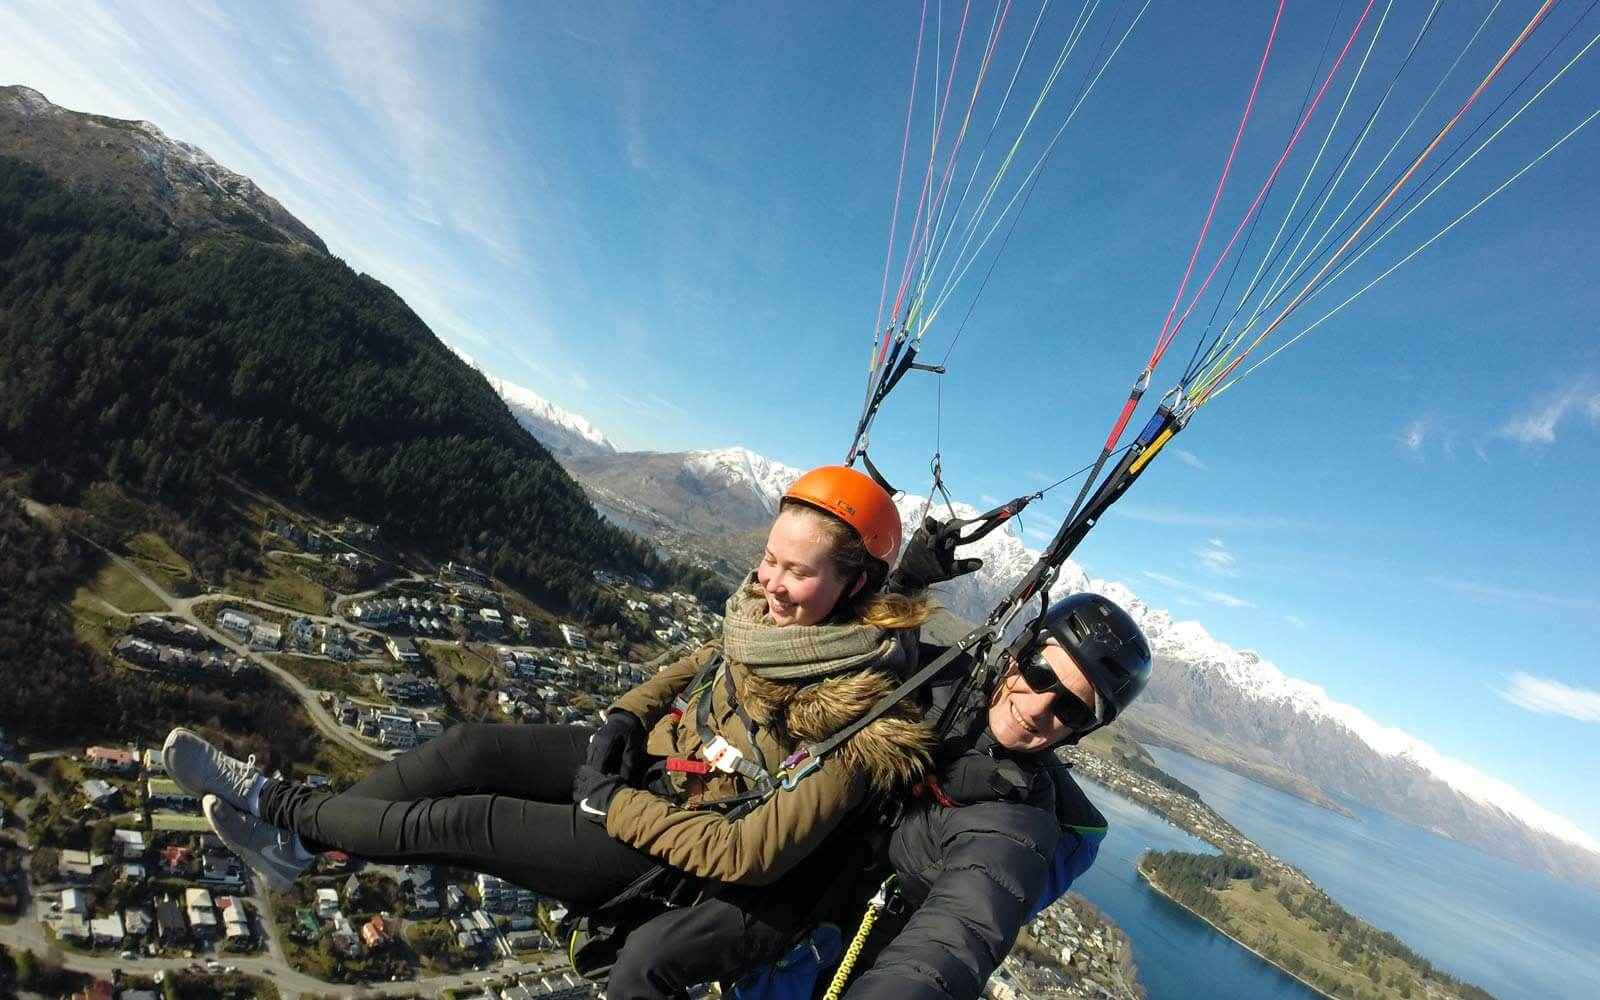 Stina beim Paragliding in Queenstown, Neuseeland